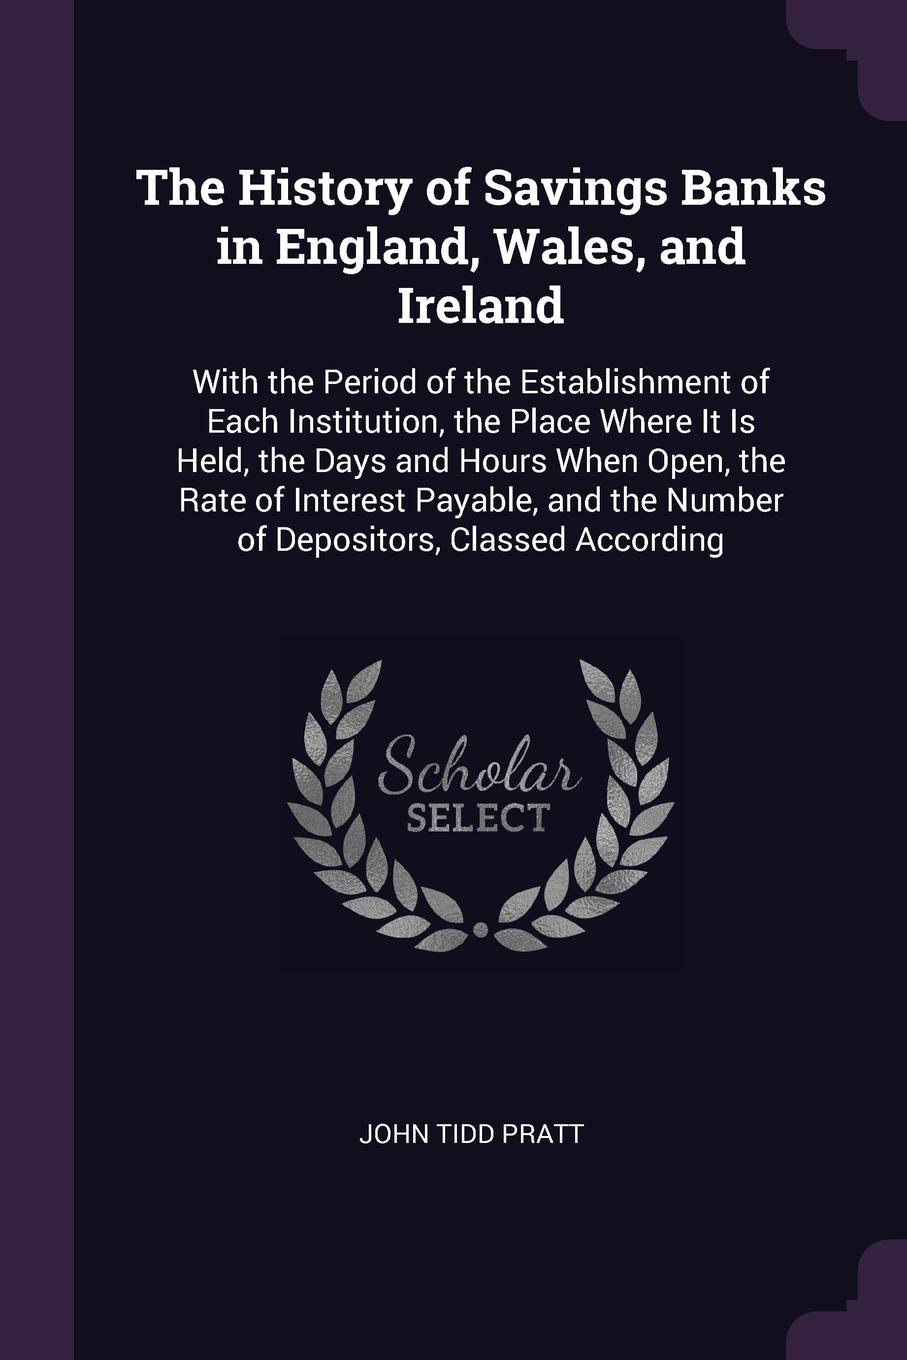 The History of Savings Banks in England, Wales, and Ireland. With the Period of the Establishment of Each Institution, the Place Where It Is Held, the Days and Hours When Open, the Rate of Interest Payable, and the Number of Depositors, Classed Ac...